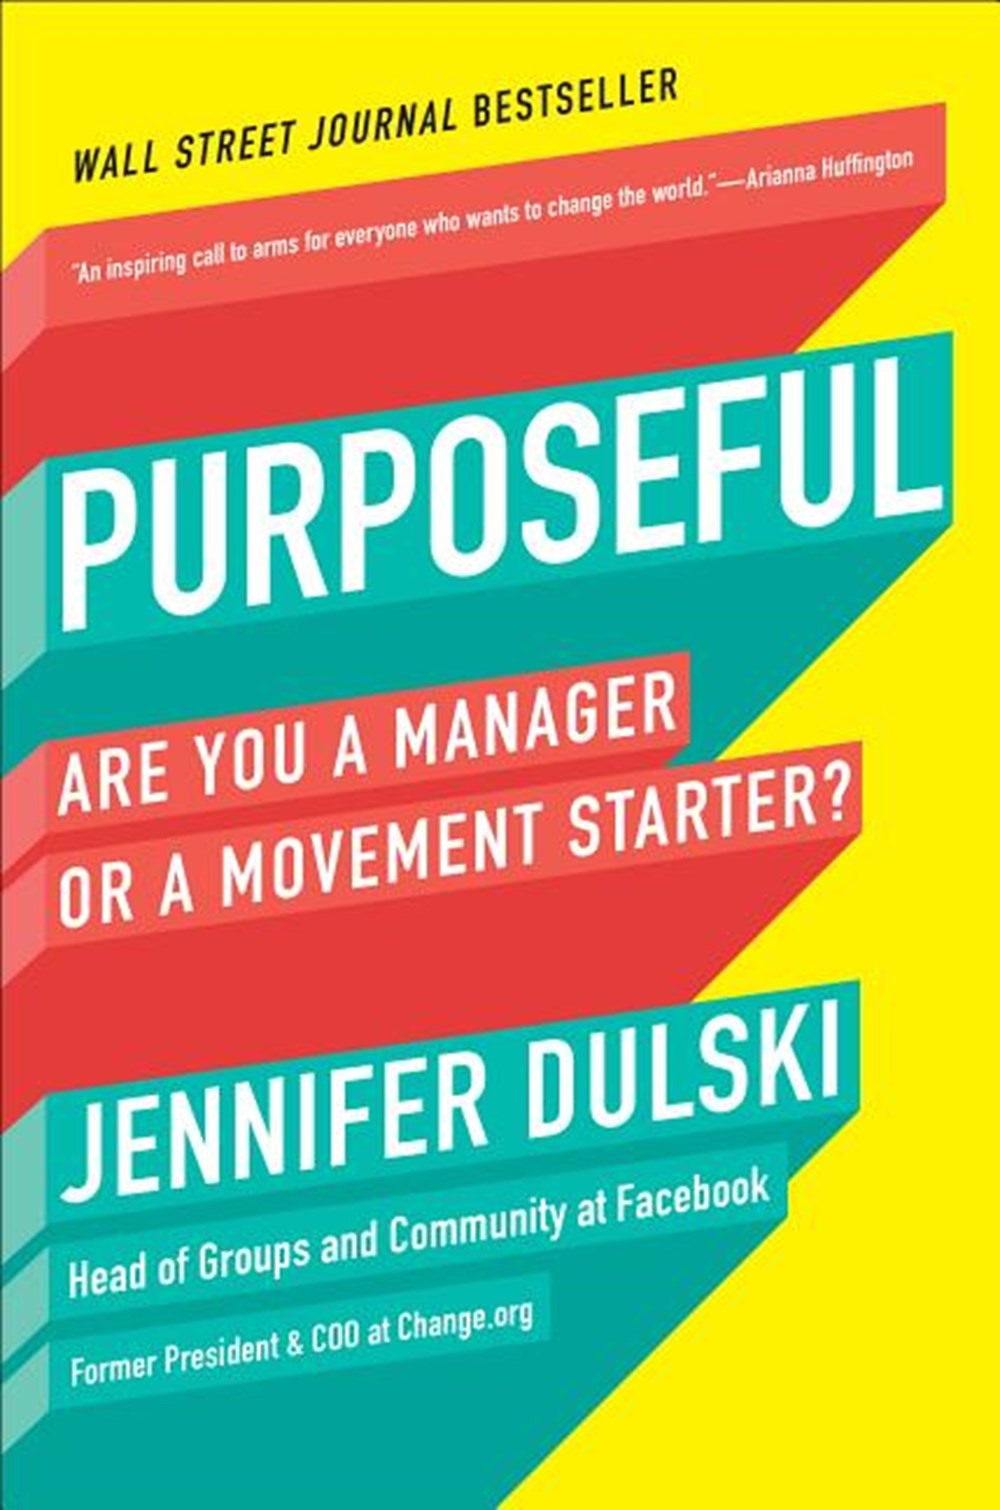 Purposeful Are You a Manager or a Movement Starter?